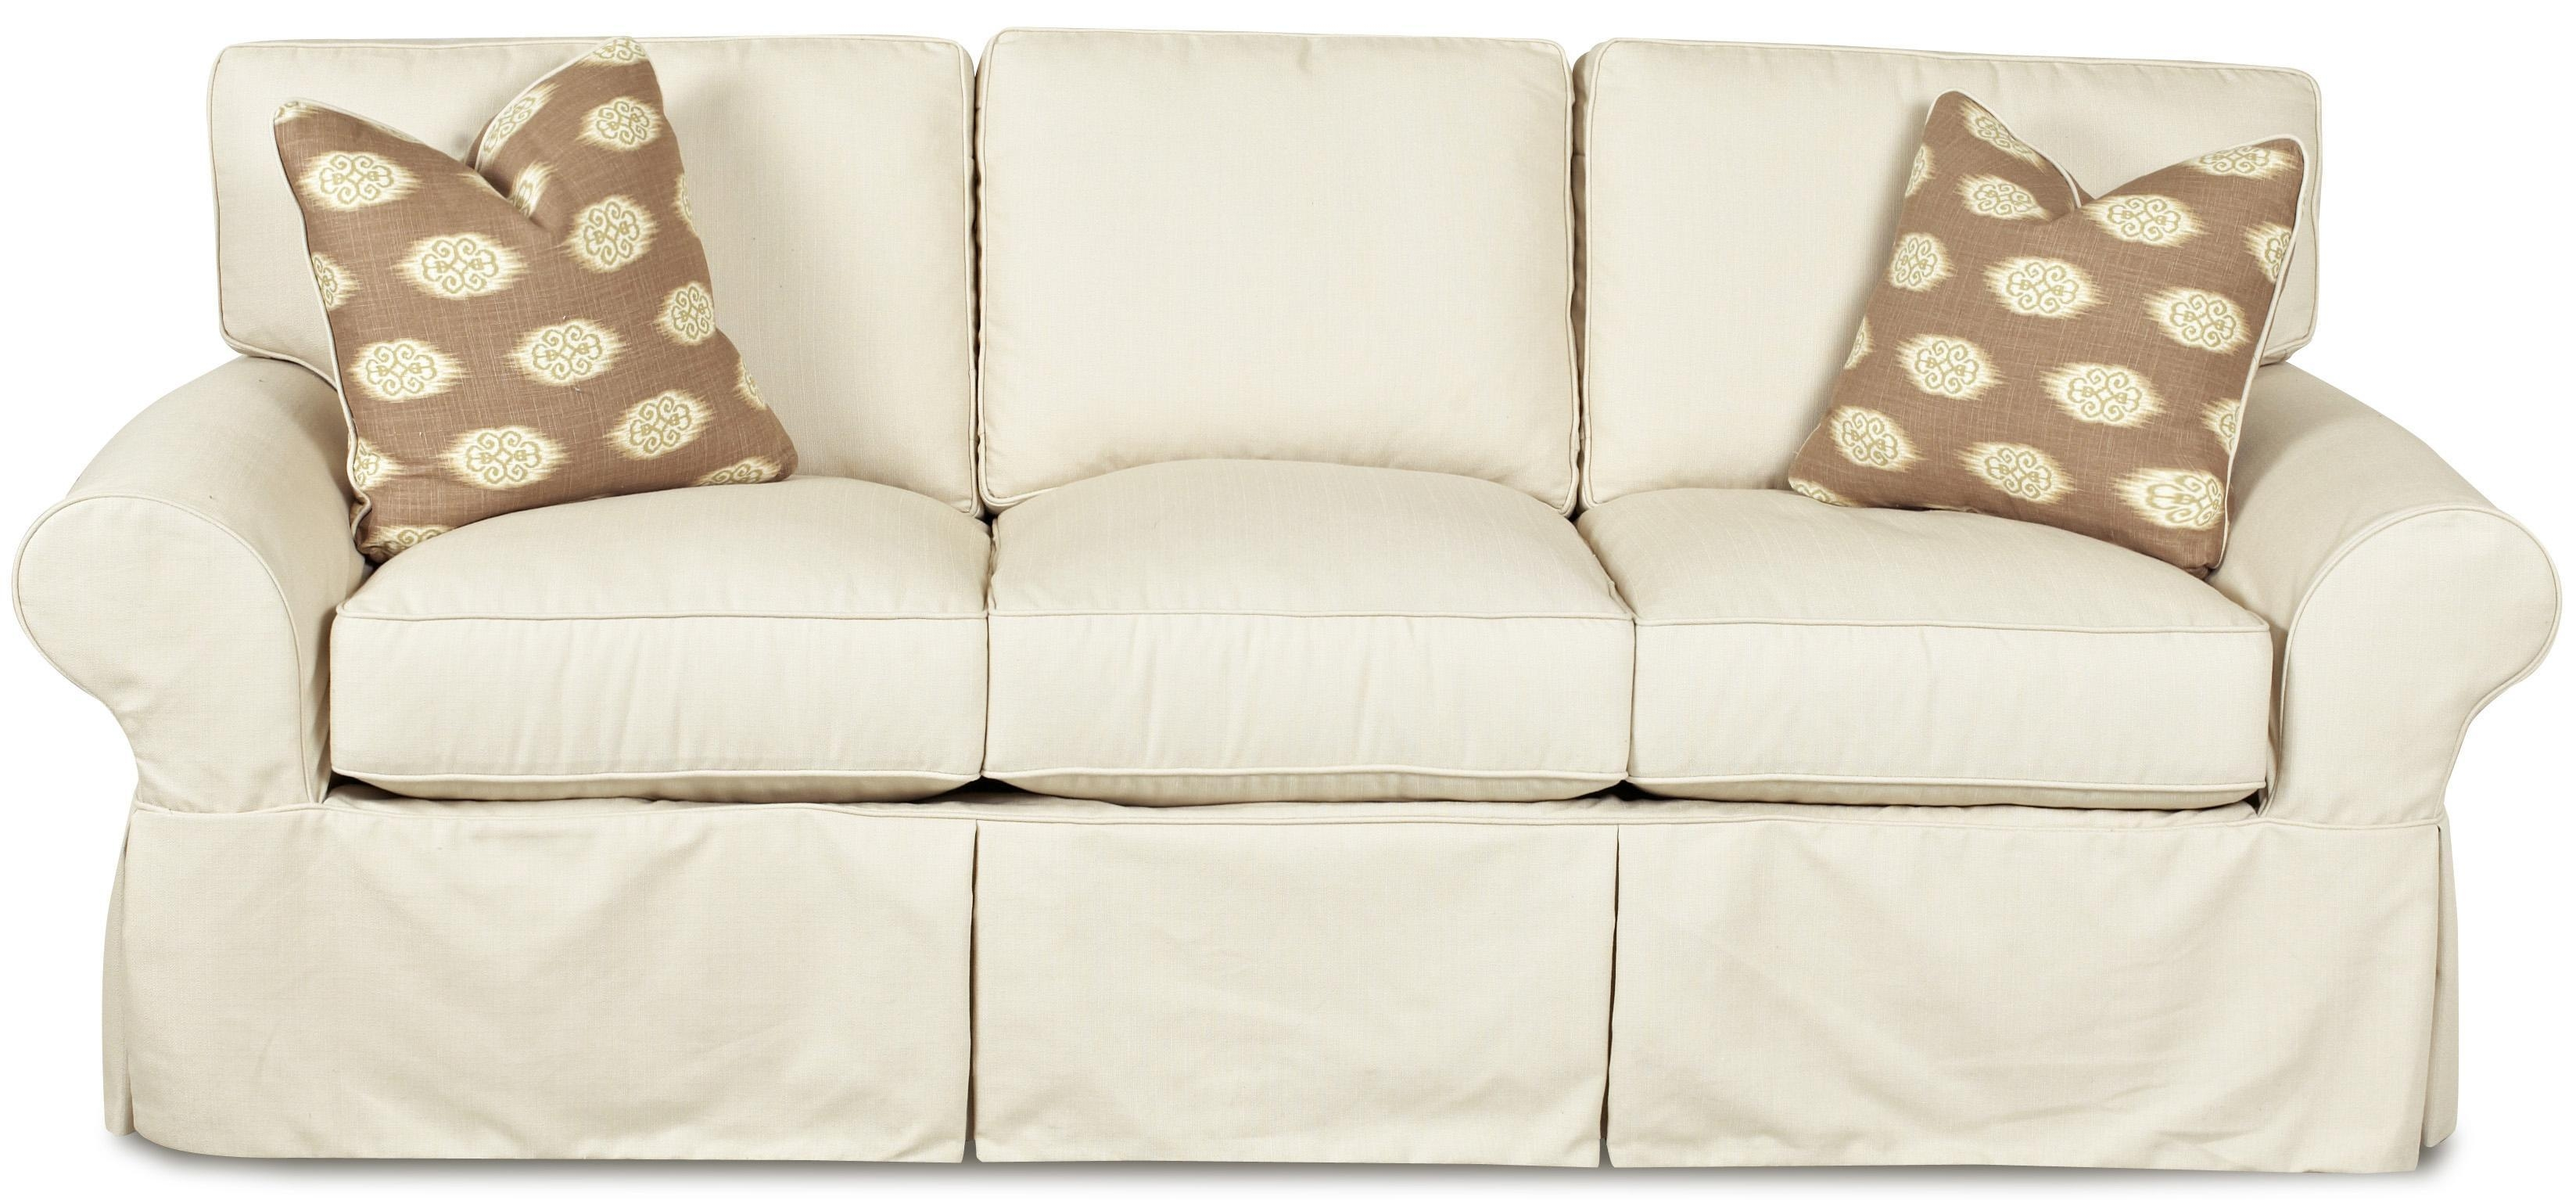 Furniture: Couch Cushion Slipcovers | T Cushion Chair Slipcovers Inside Sofa And Chair Slipcovers (View 17 of 20)